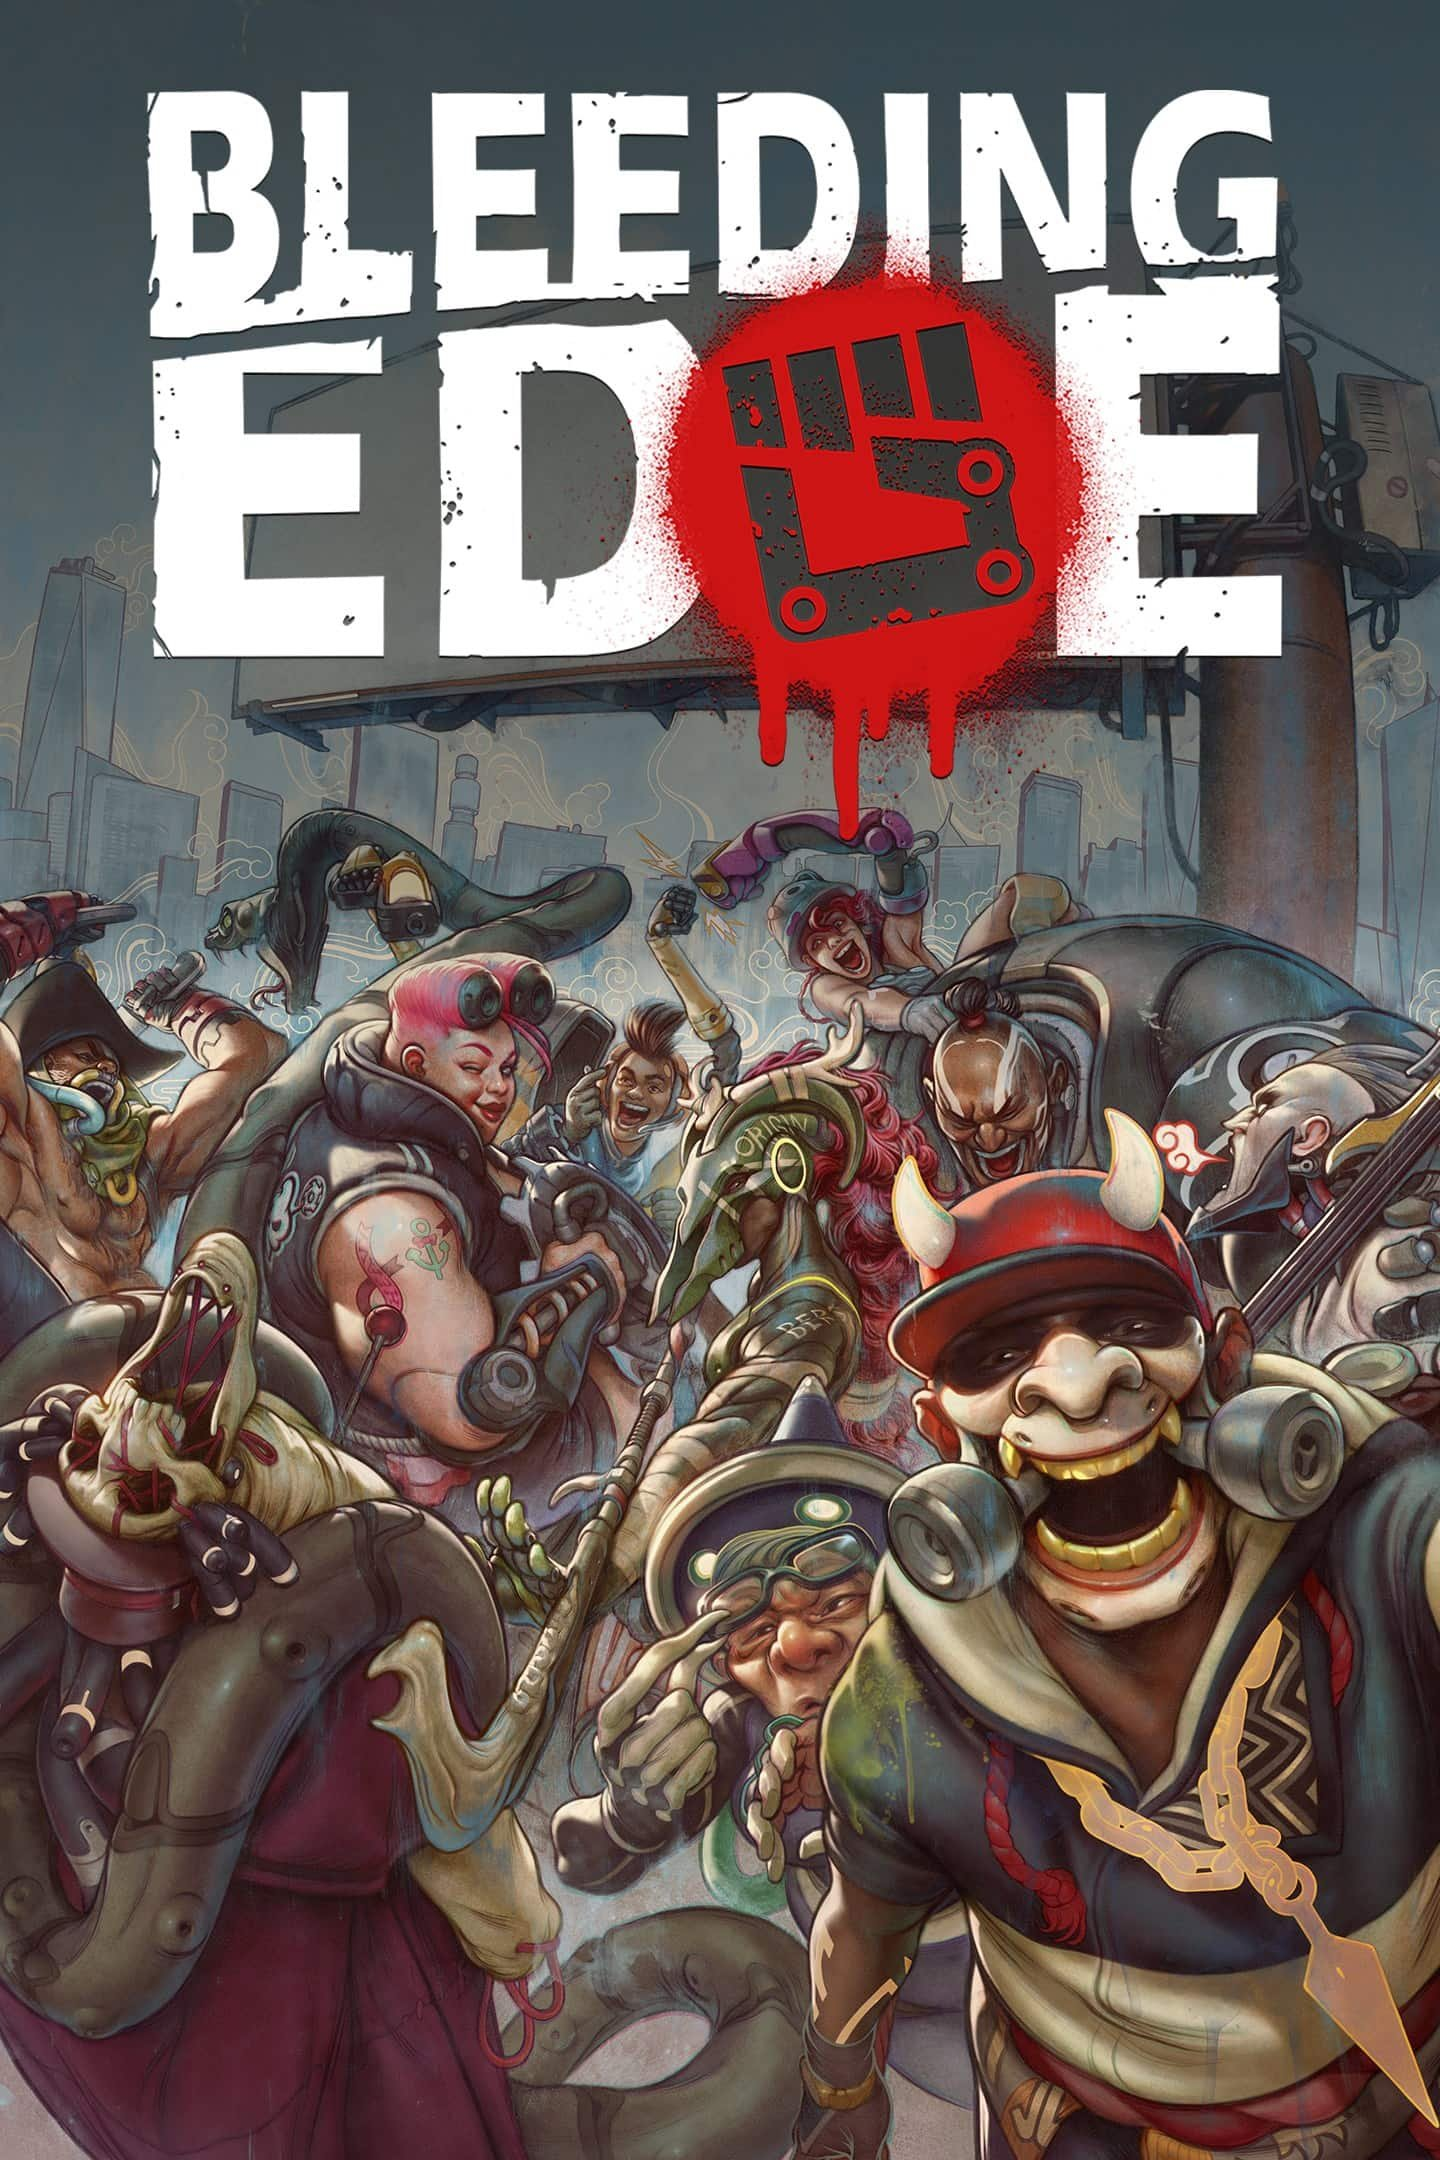 Bleeding Edge Review - Chaotically Confounding 1